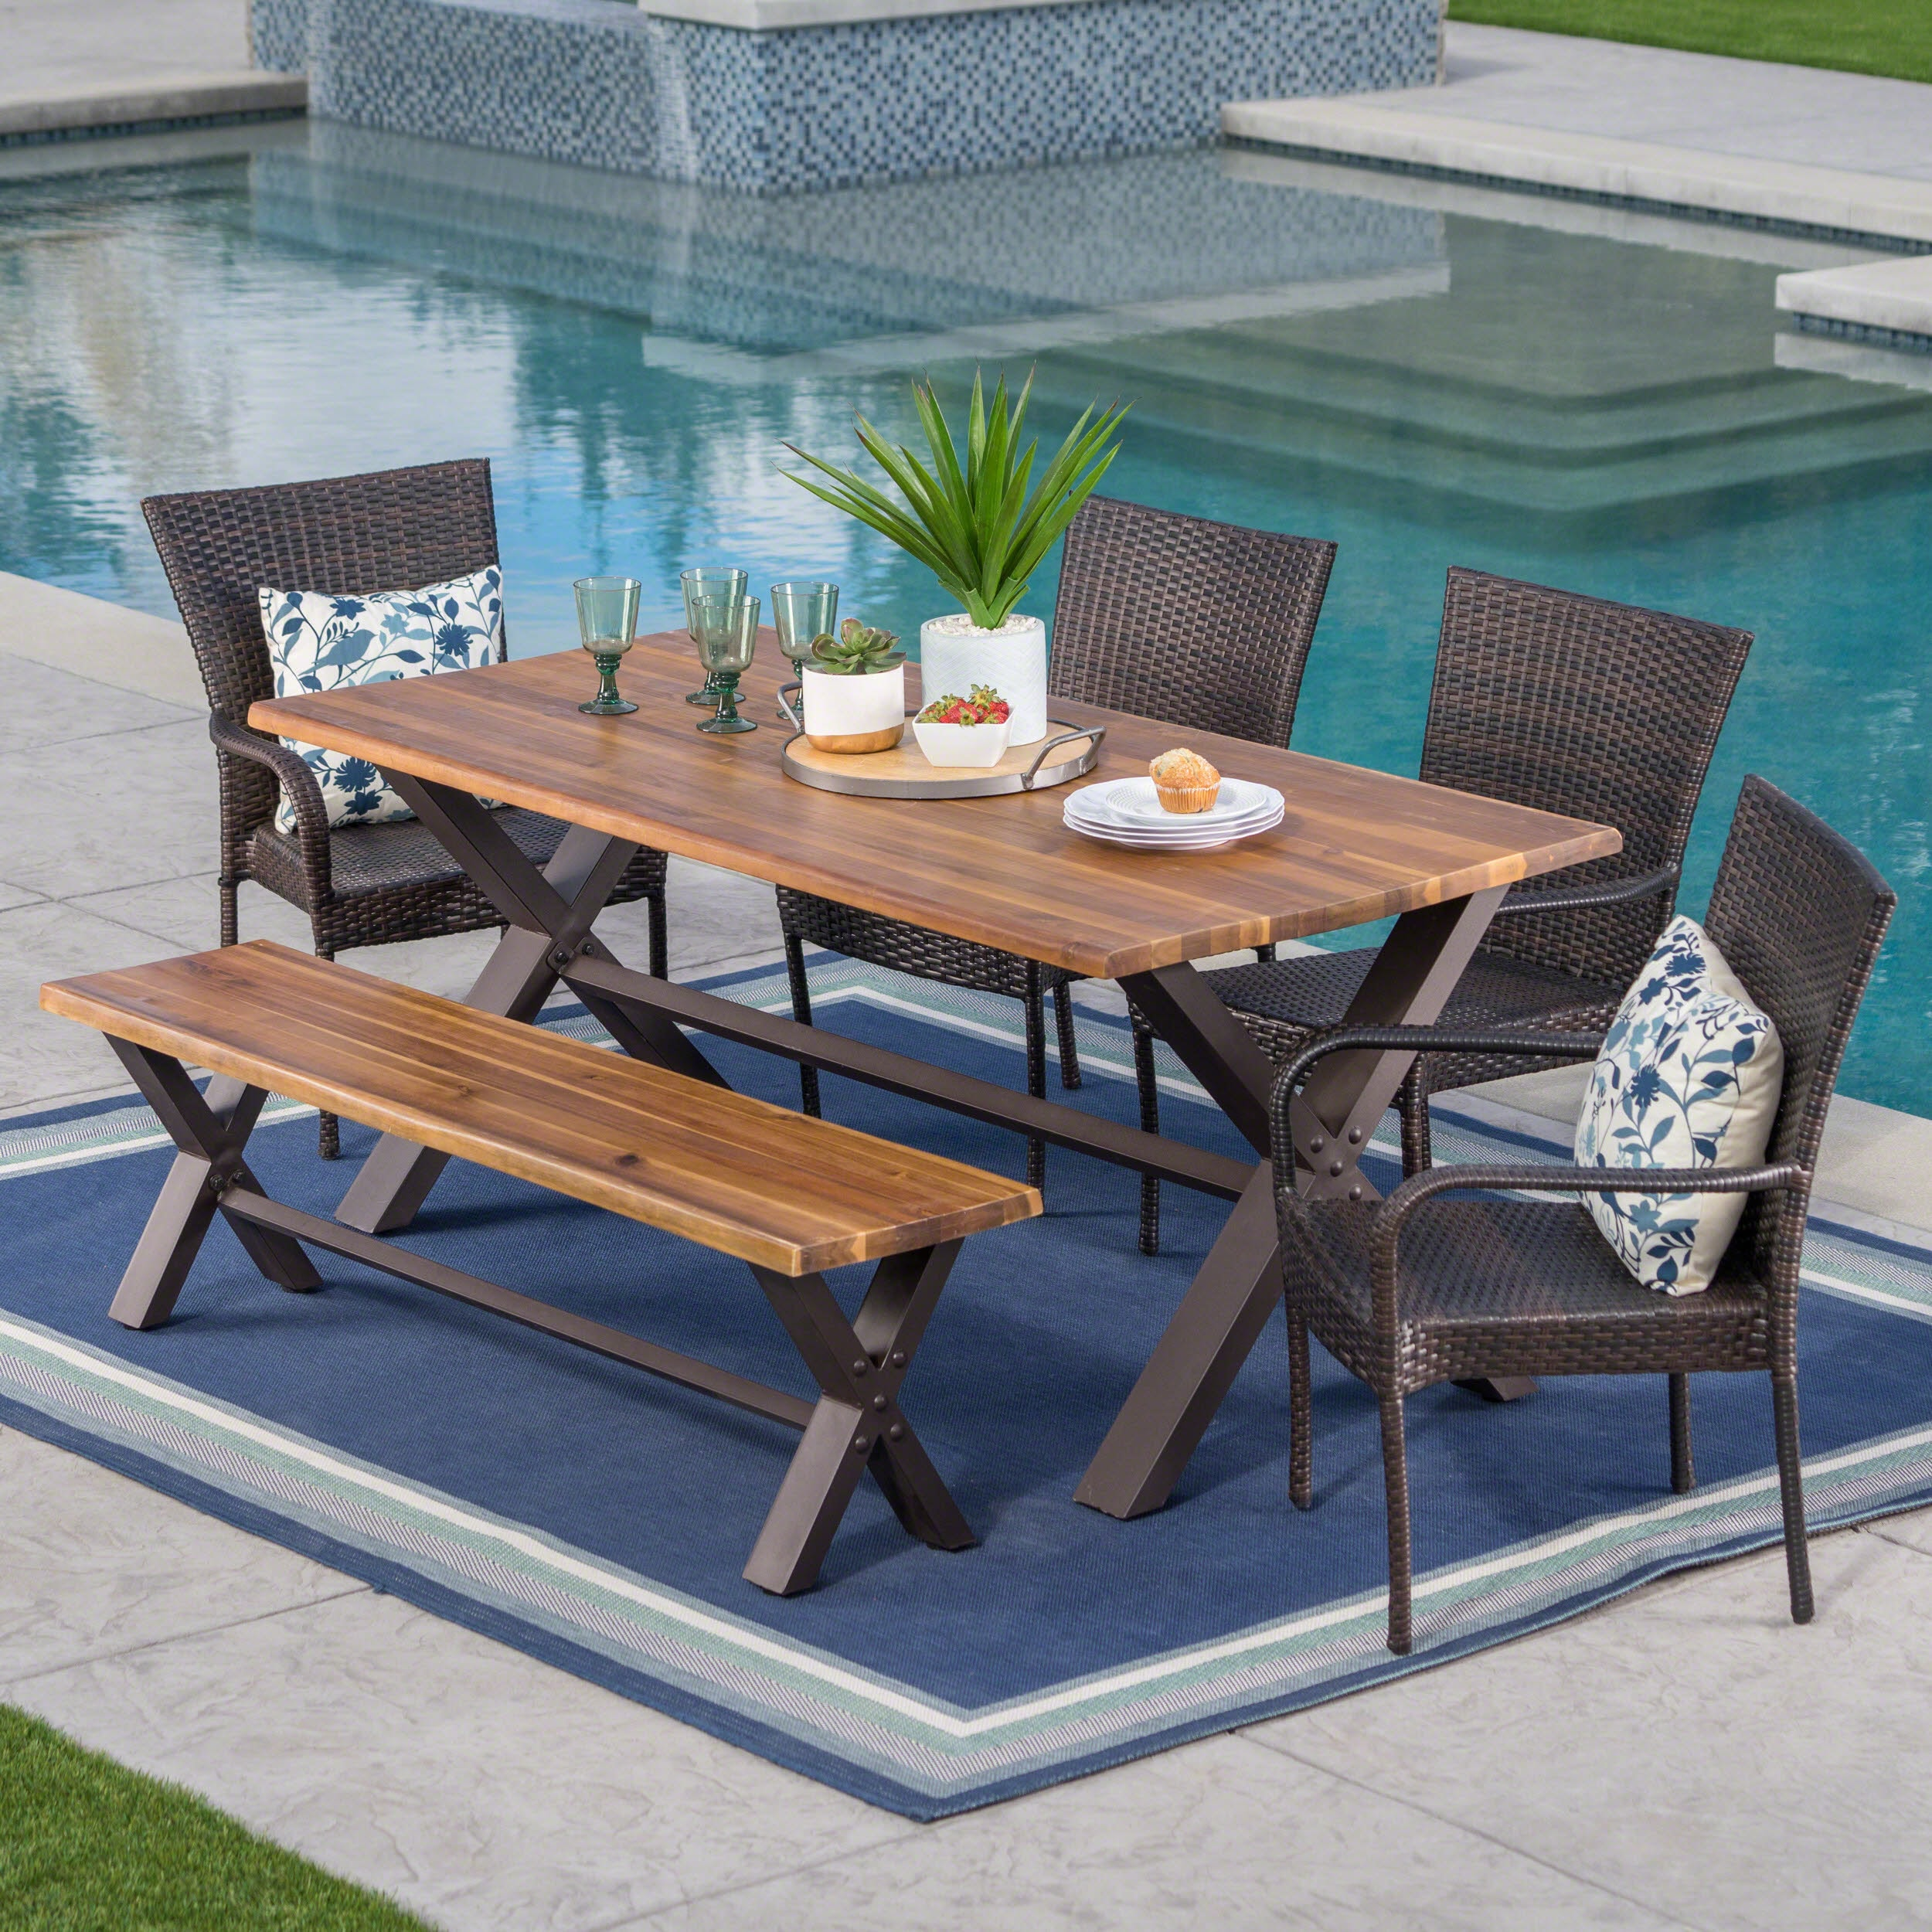 Bullerton outdoor 6 piece rectangle wicker wood dining set by christopher knight home